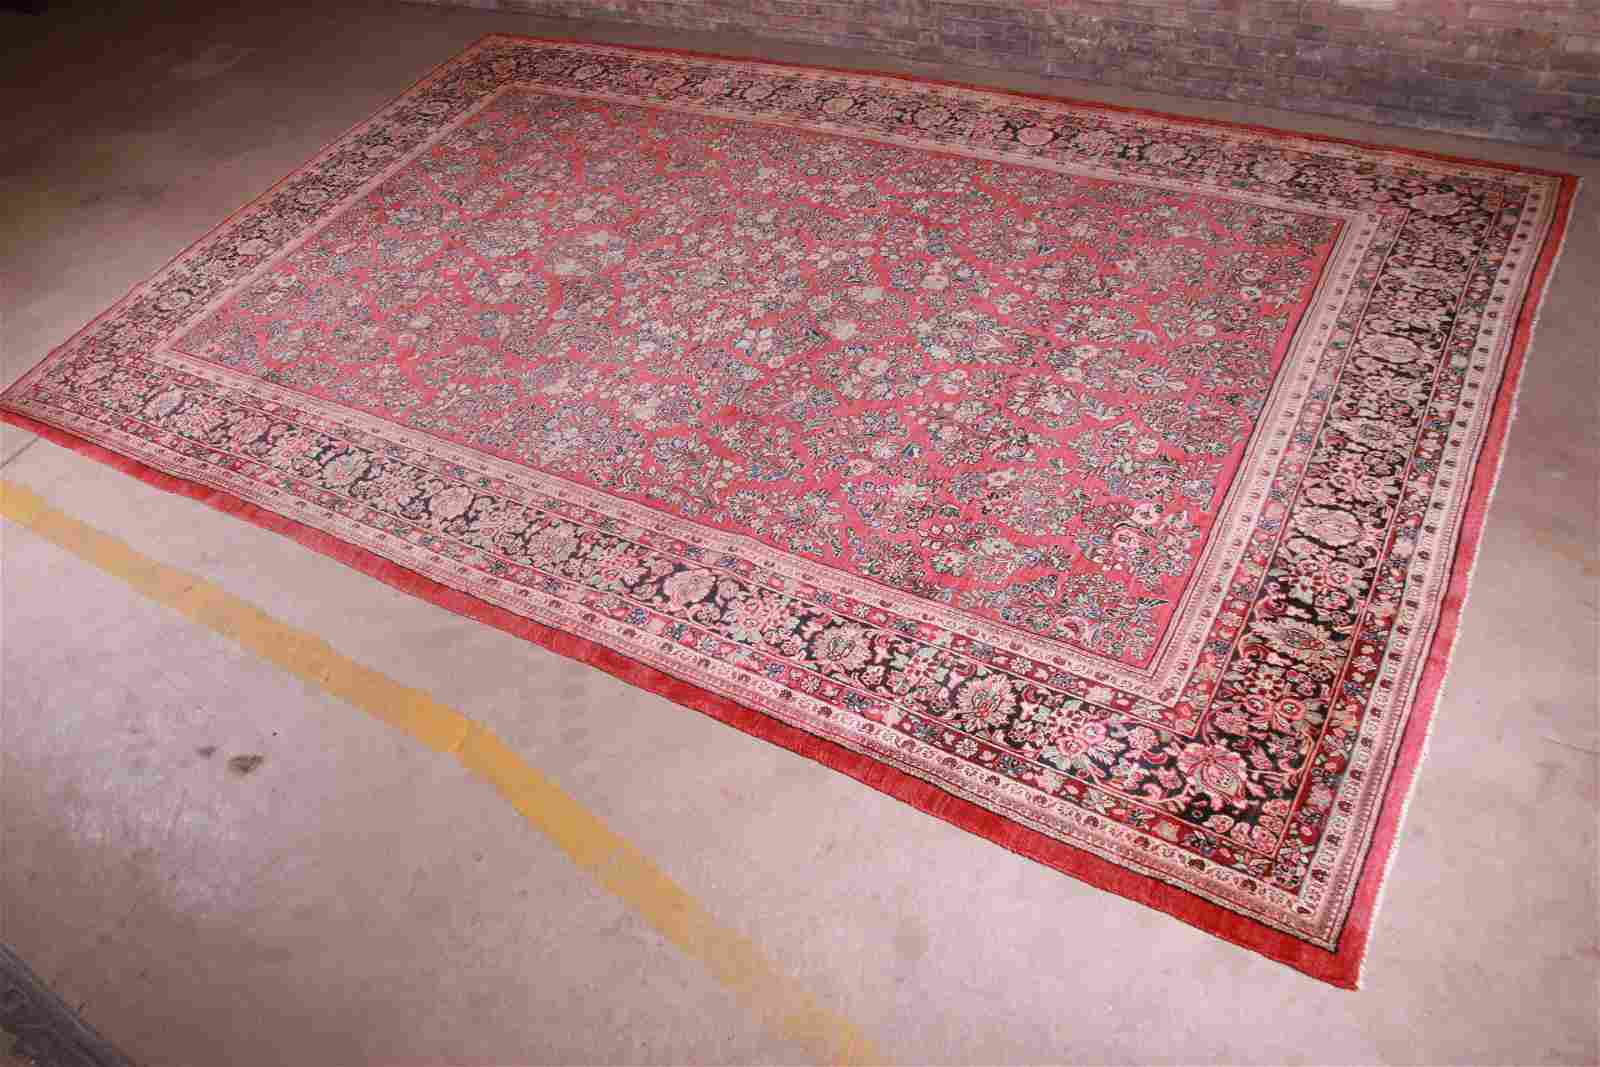 Semi-Antique Hand-Knotted Persian Sarouk Room Size Rug